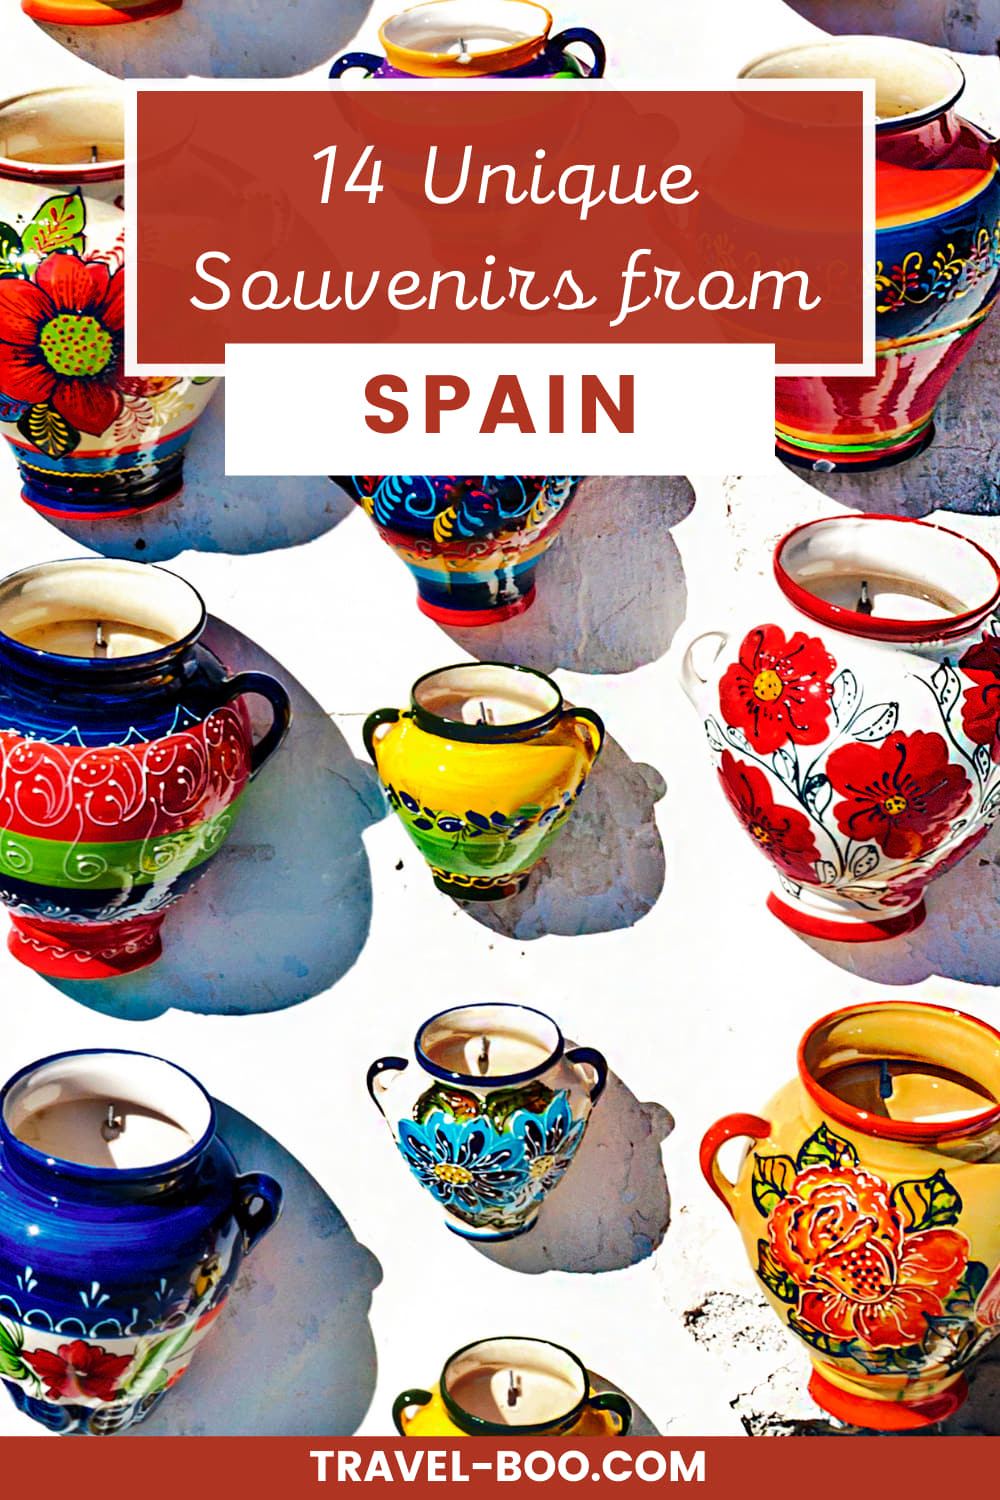 14 Best Spanish Souvenirs to Buy When Travelling in Spain! Spain travel, Spain Souvenirs, Spain Travel Guide, Spain Travel Tips, Souvenirs from Spain, Spain Itinerary